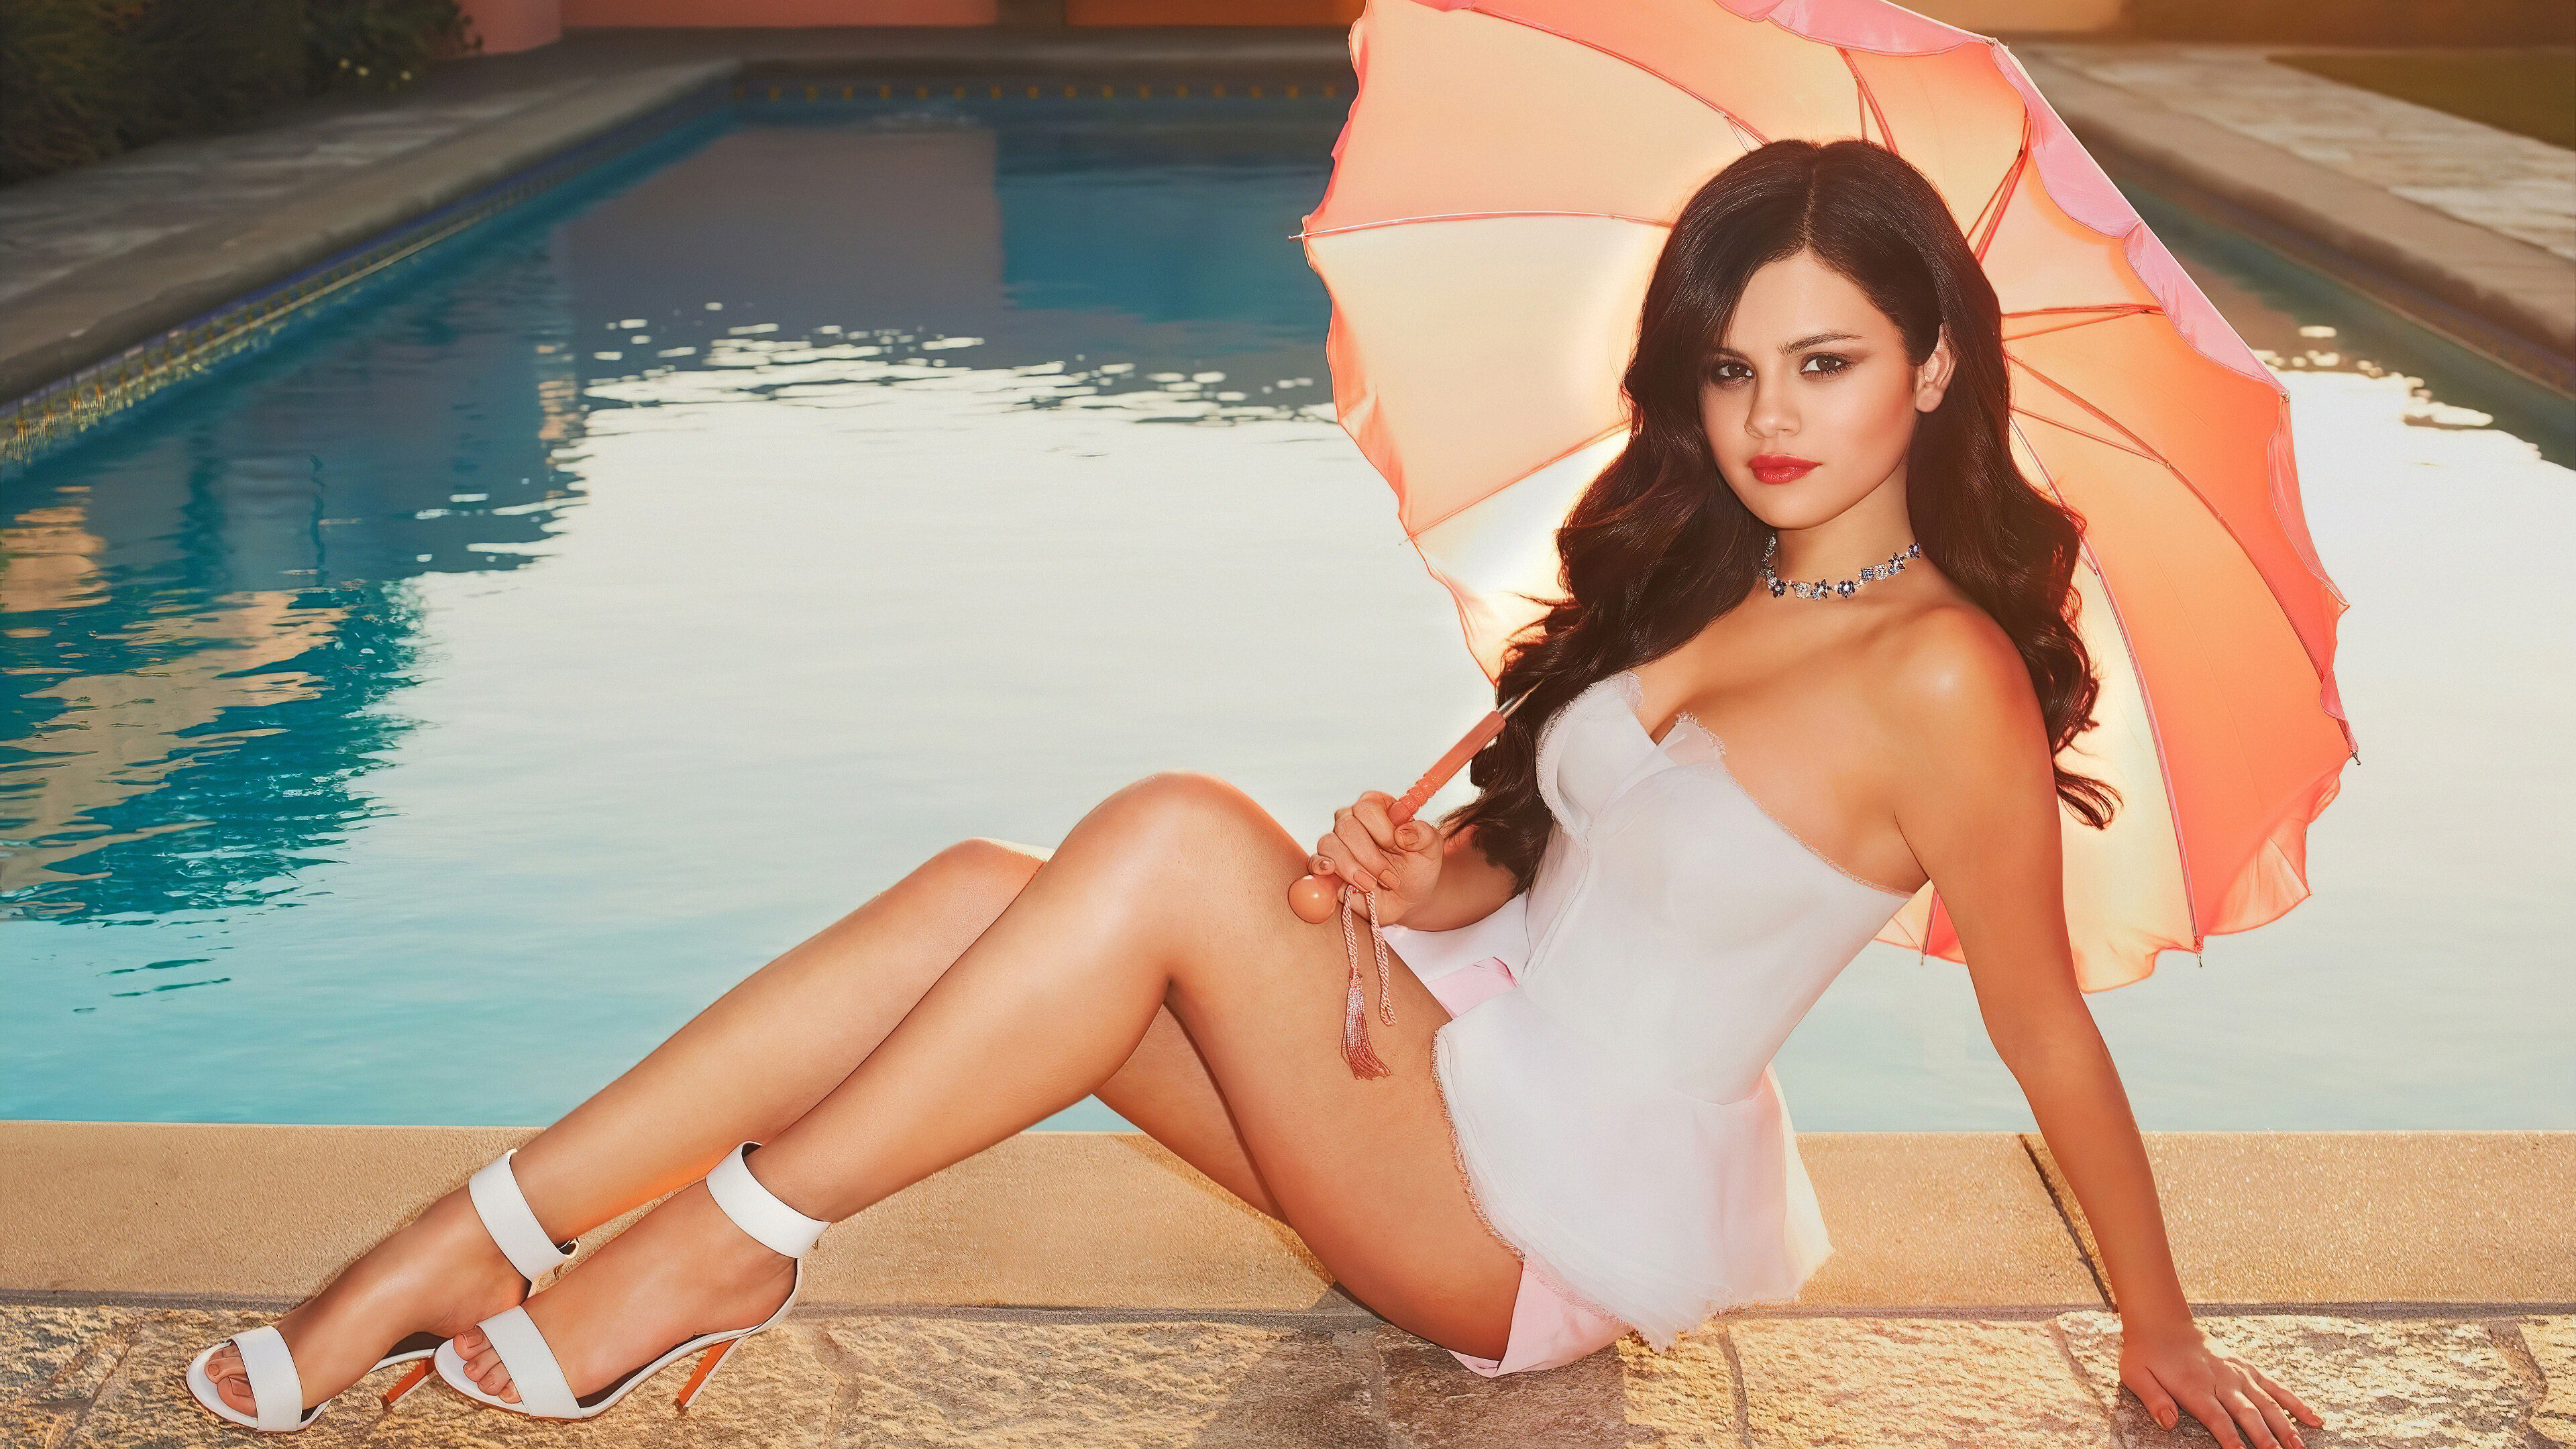 Wallpaper Selena Gomez in a pool